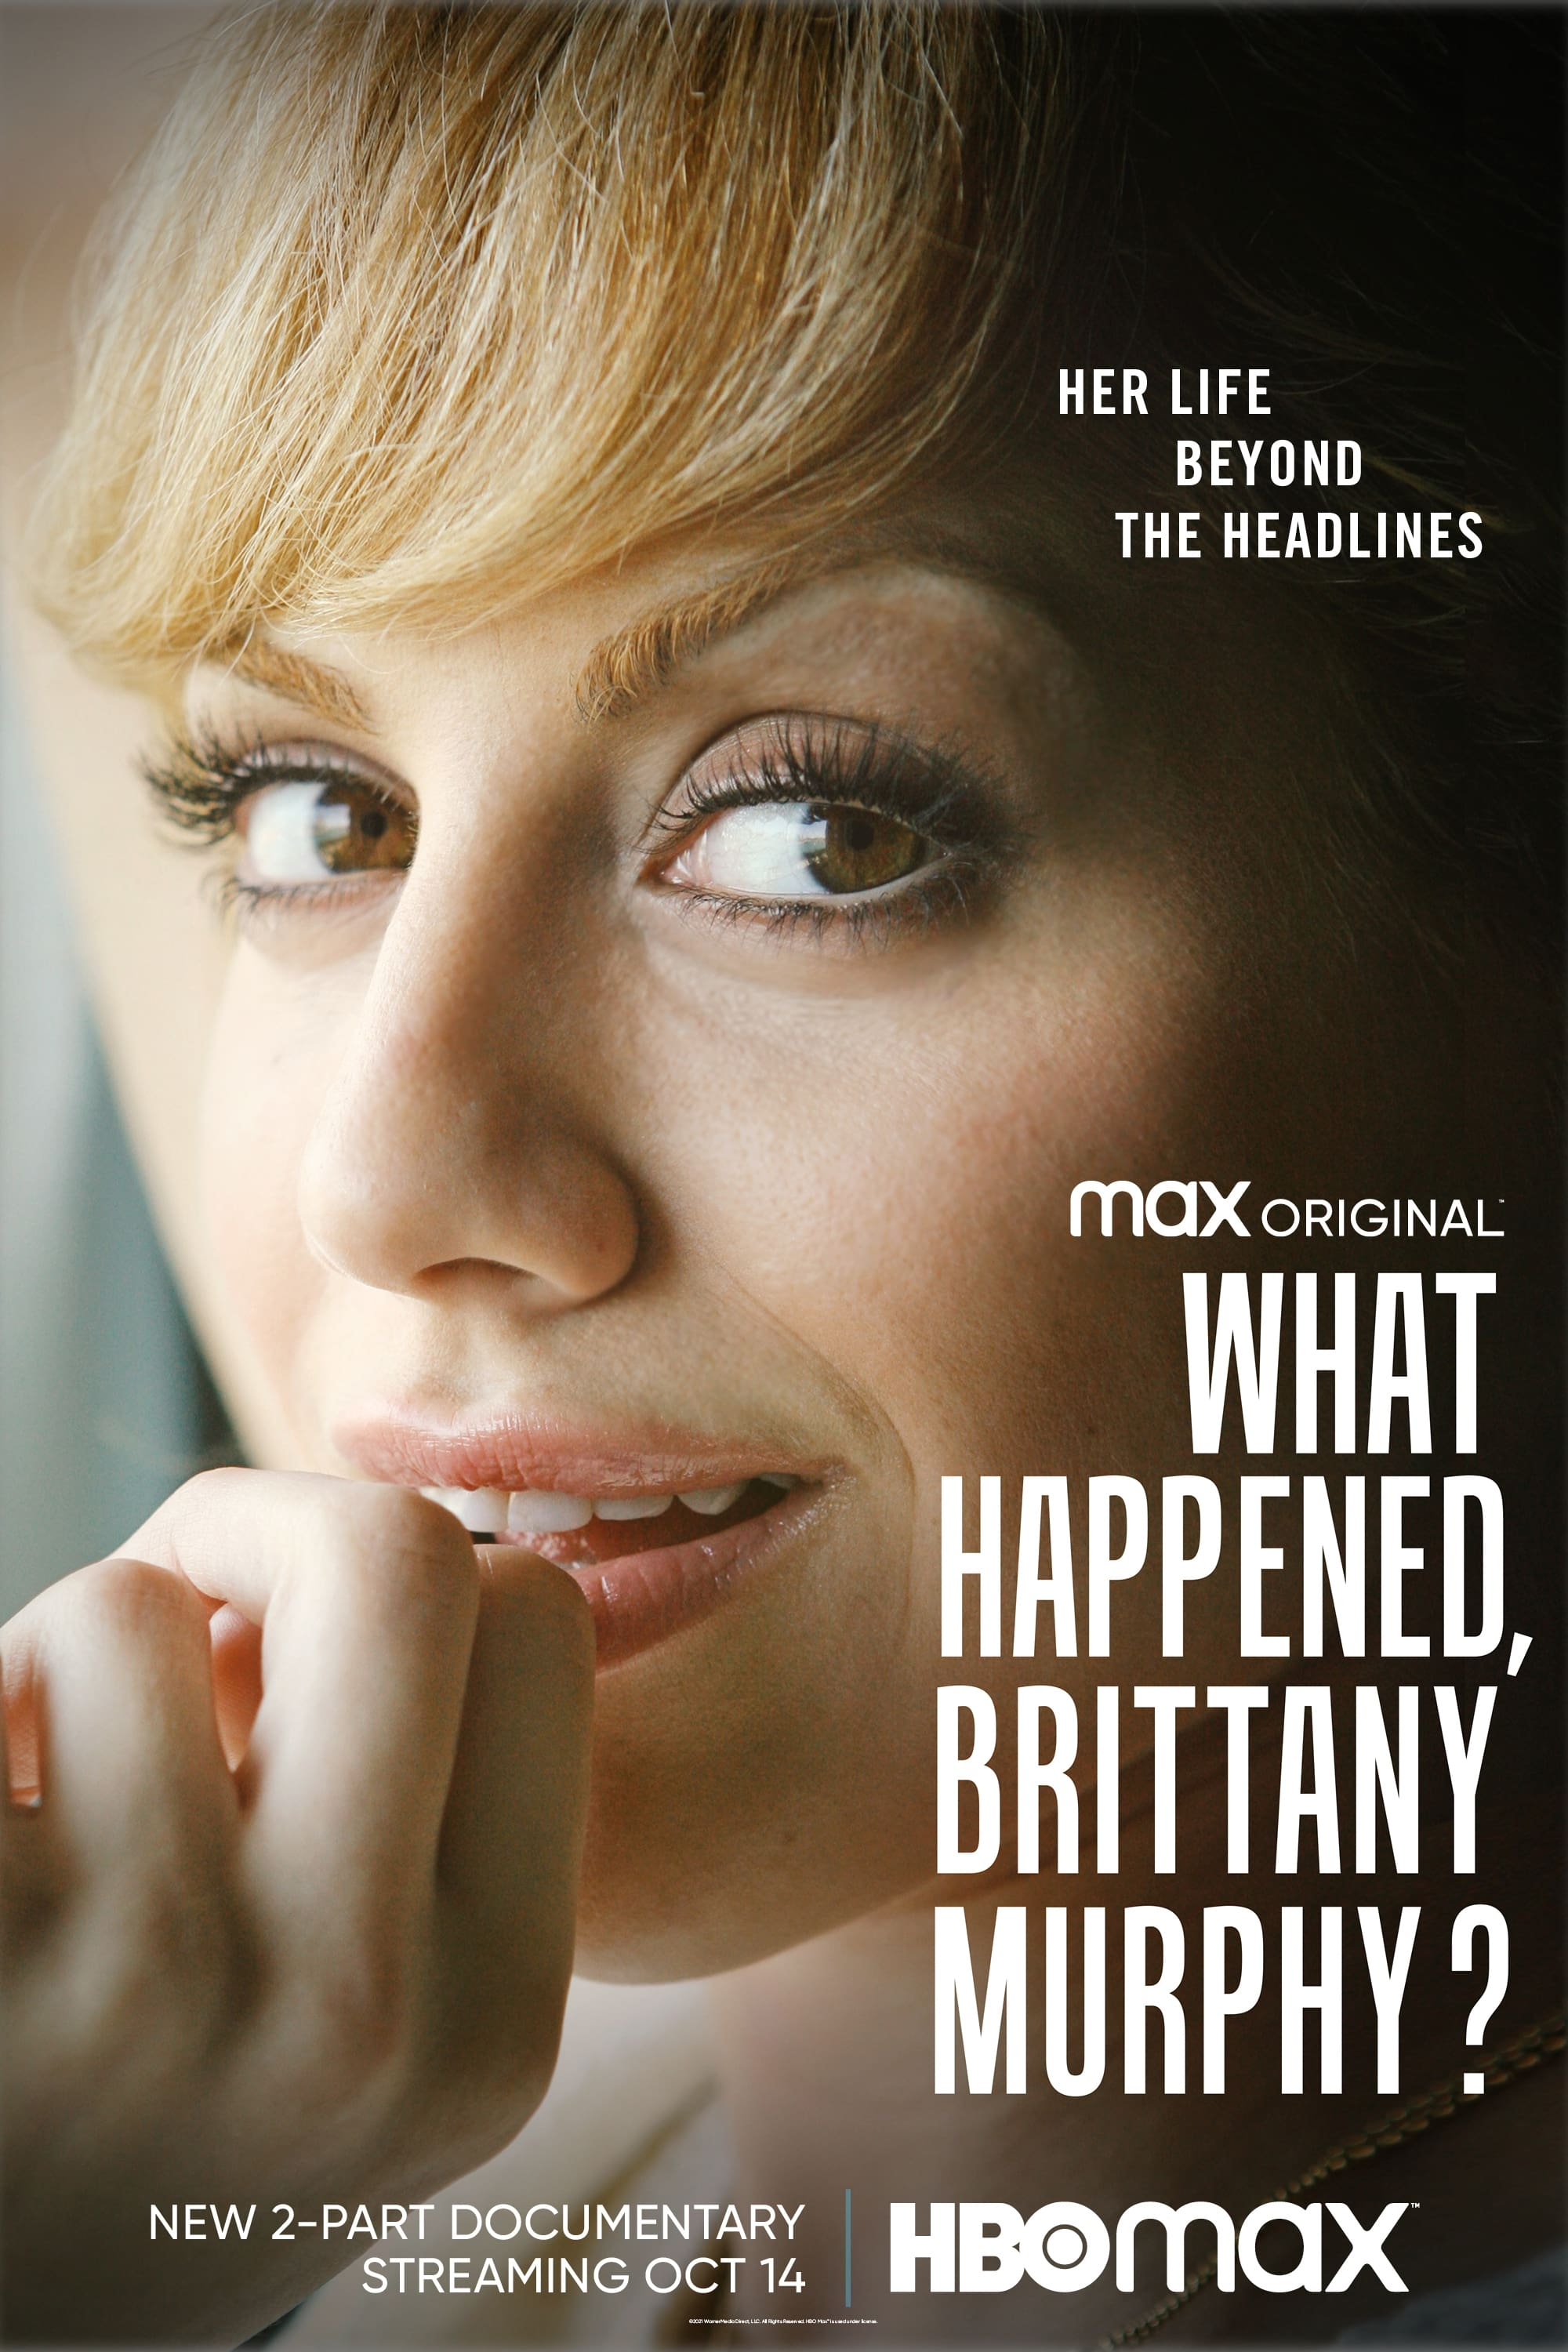 TV Shows Like What Happened, Brittany Murphy?